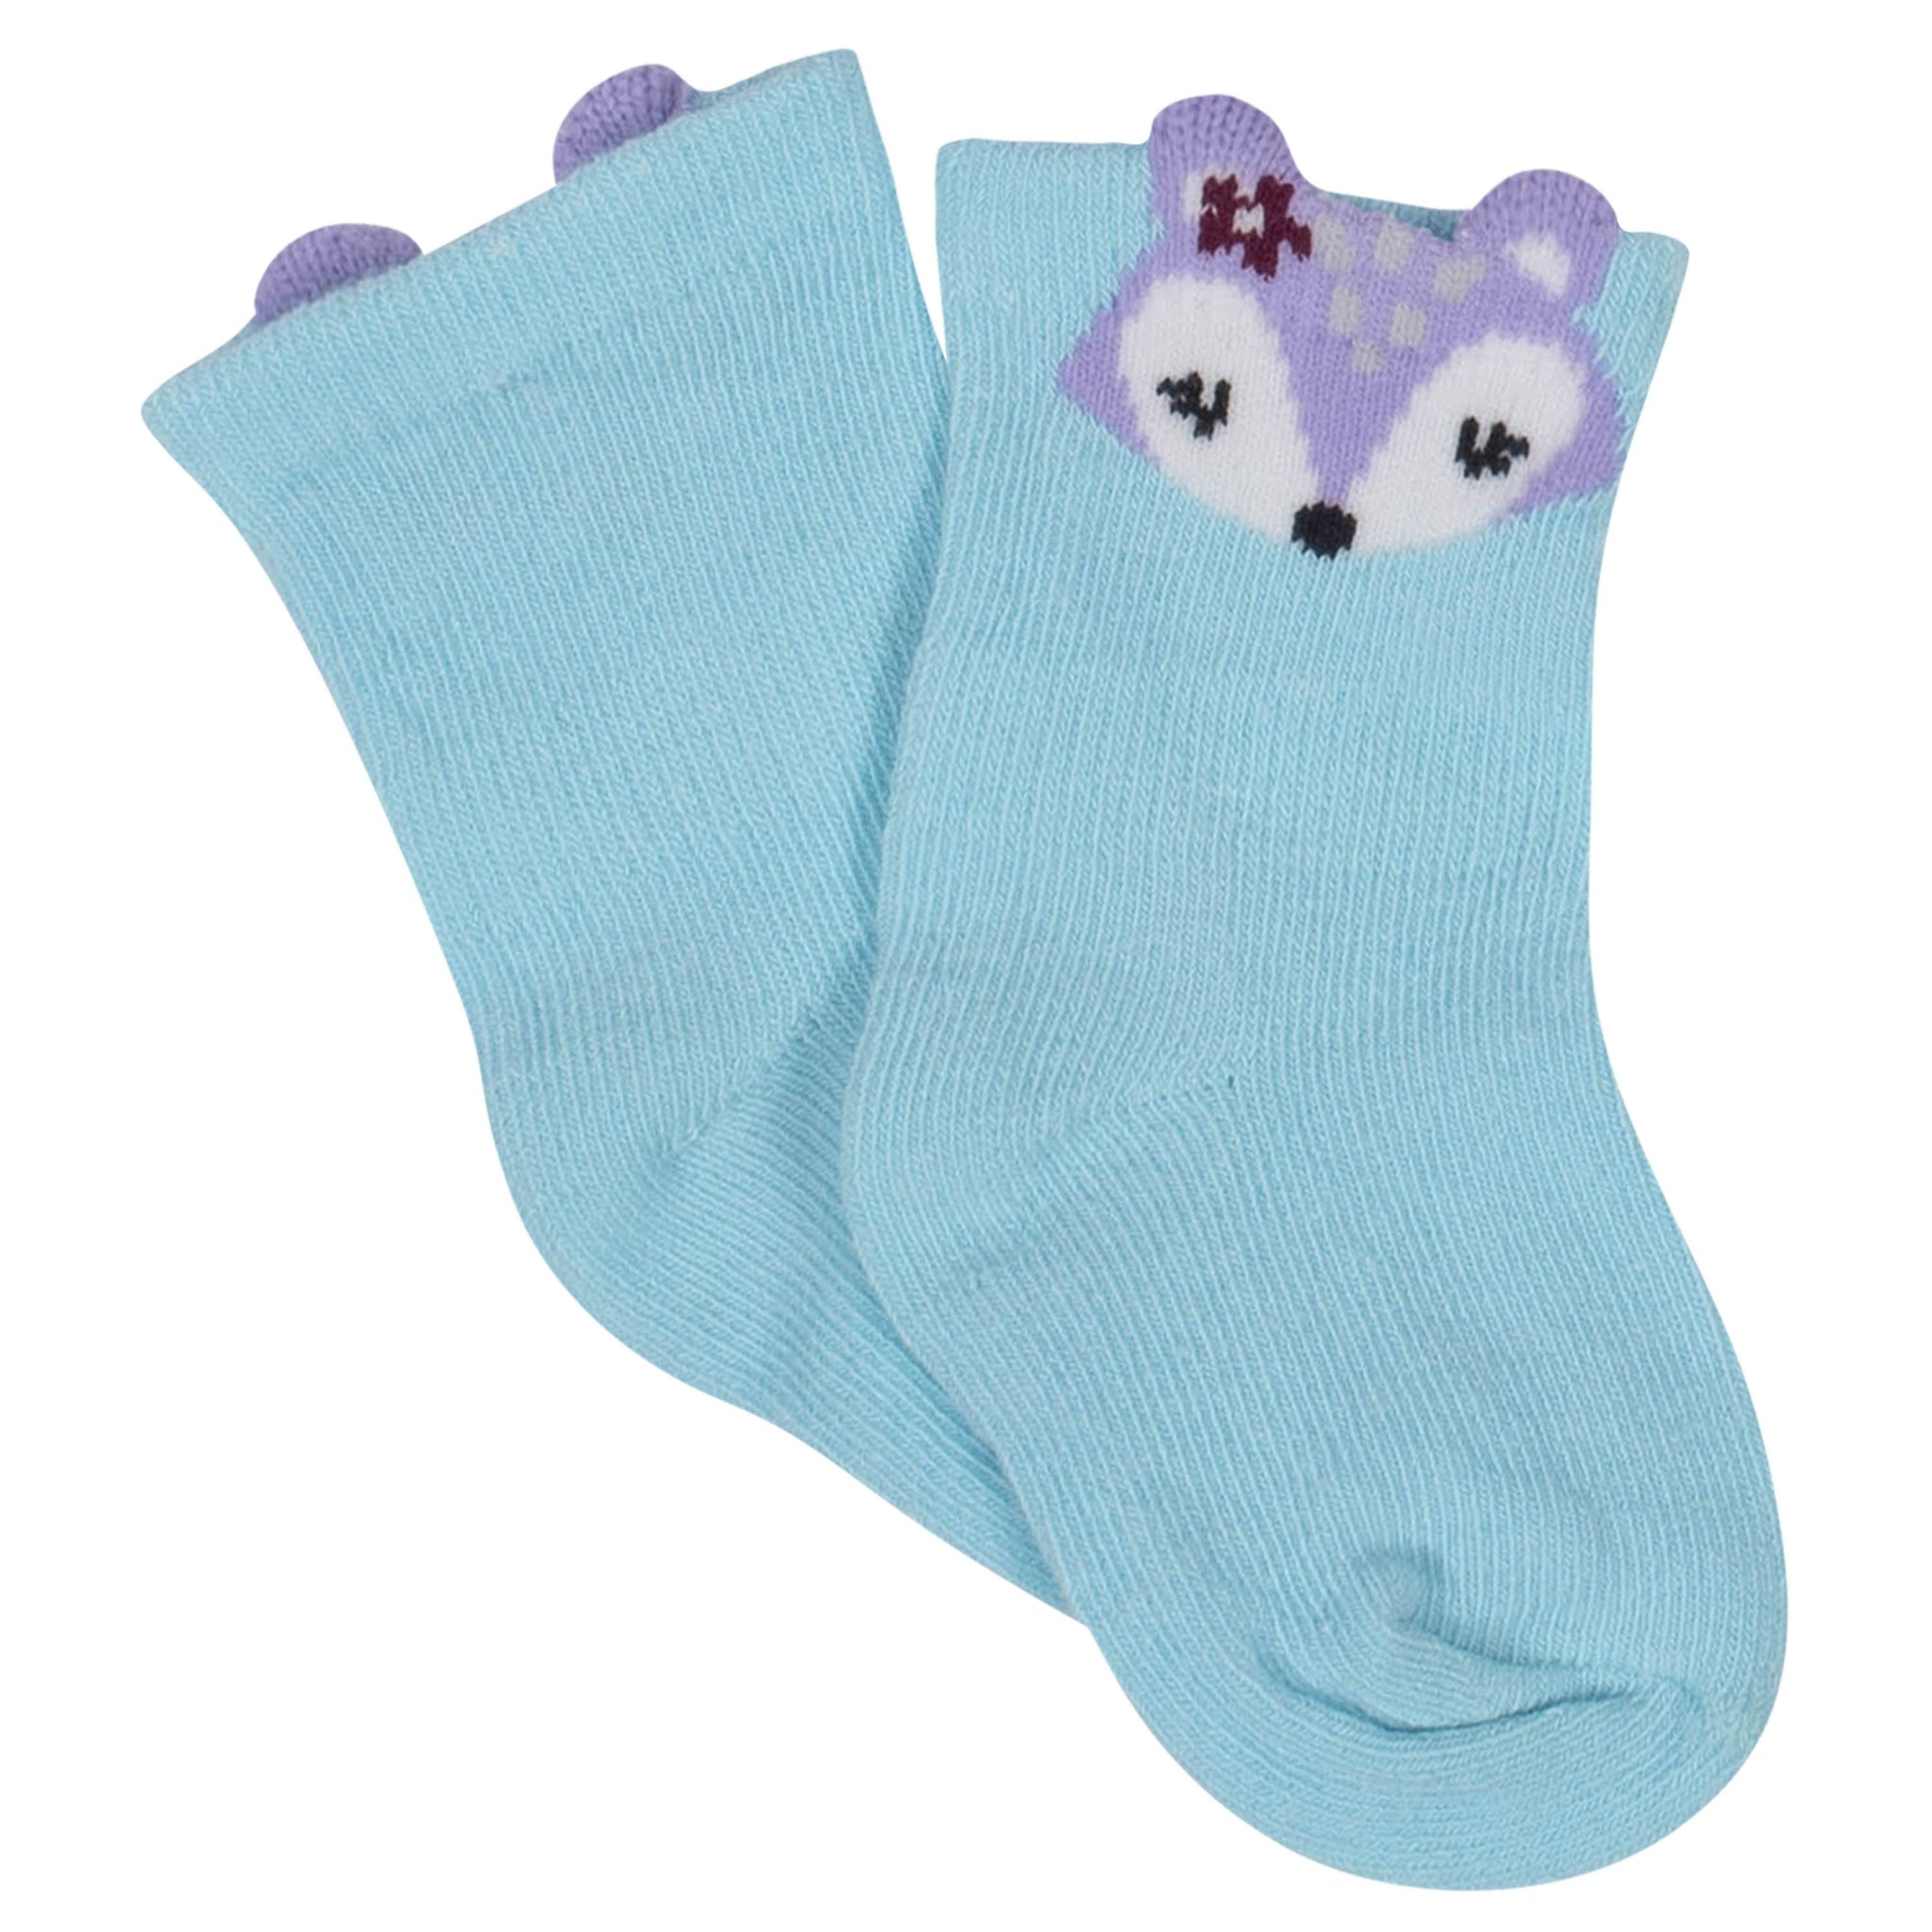 Girls' 8-Pack Wiggle Proof Jersey Crew Socks - Animals